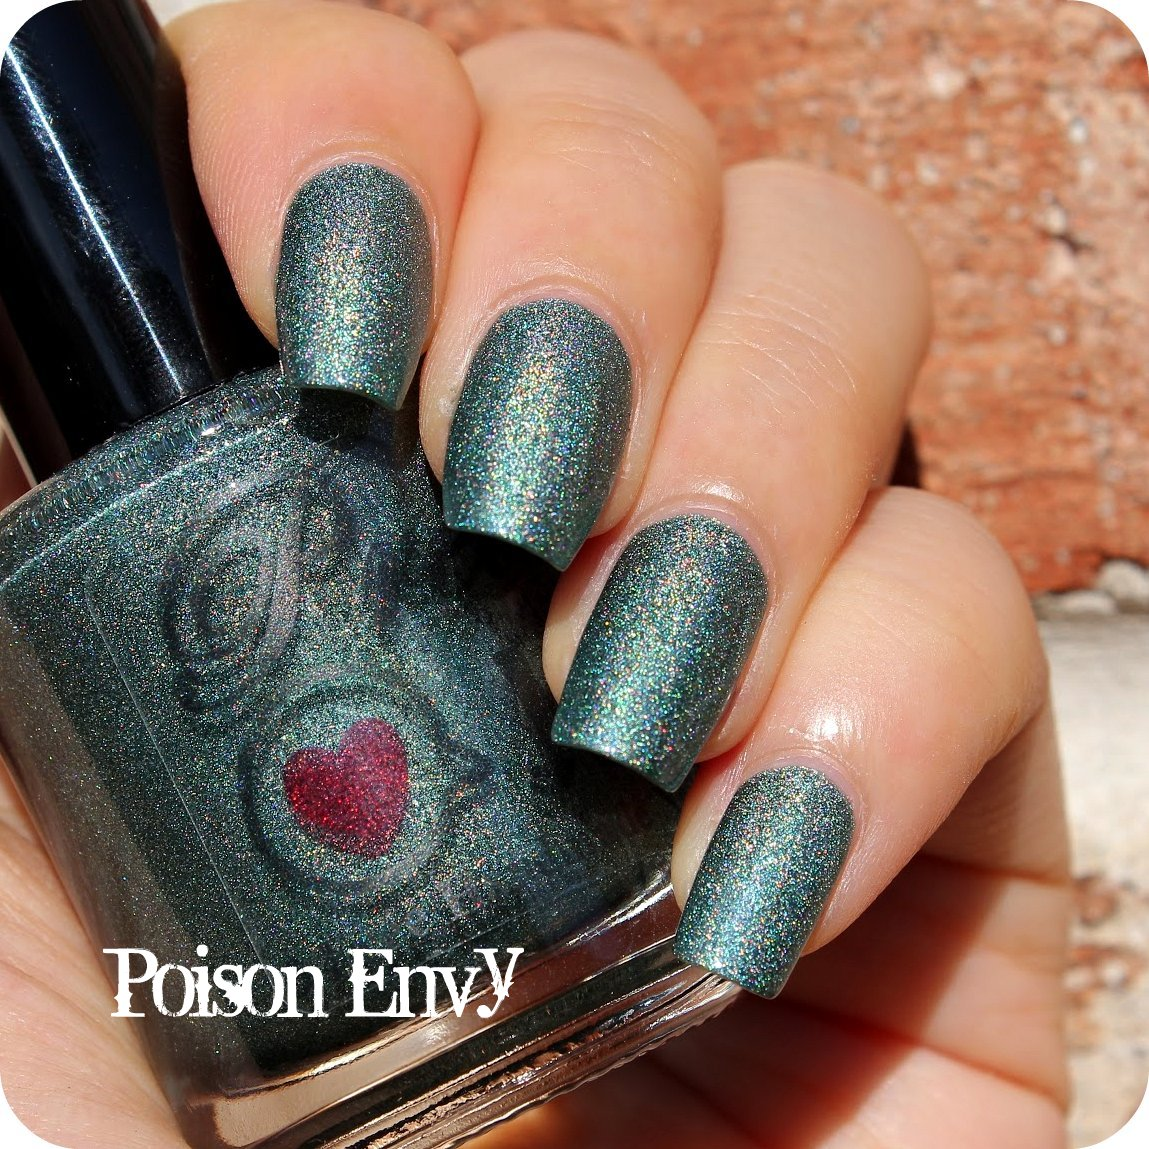 Liquid Jelly: Pretty Jelly: The Fall Collection